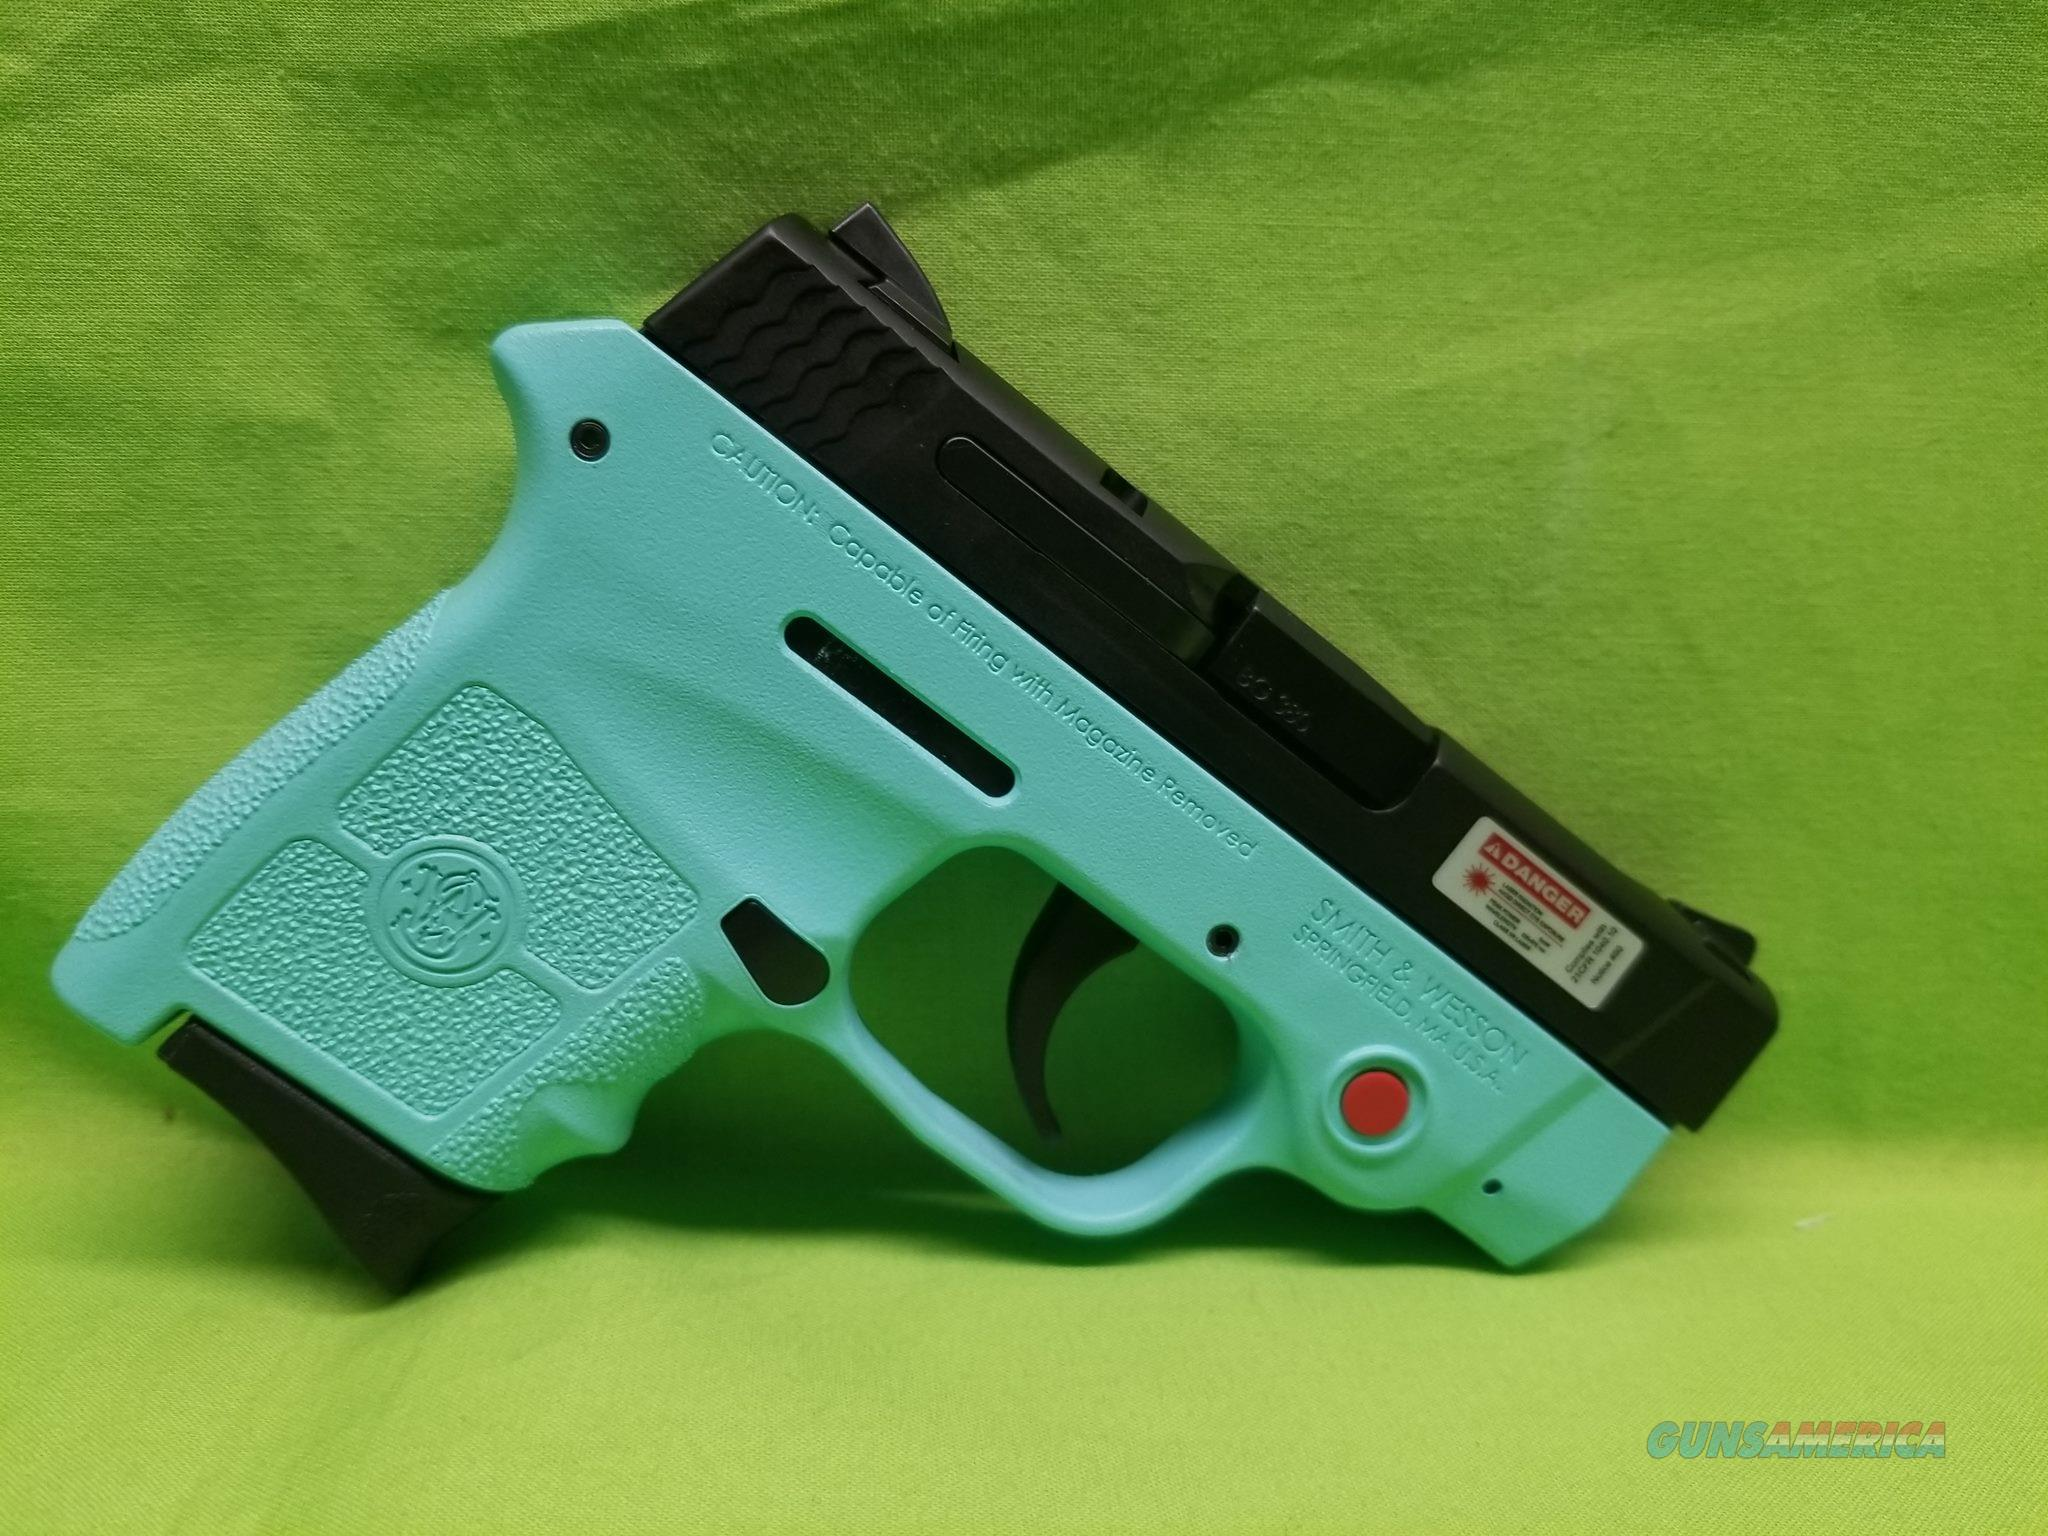 S&W M&P BODYGUARD TIFFANY 380 ACP ROBIN EGG BLUE  Guns > Pistols > Smith & Wesson Pistols - Autos > Polymer Frame